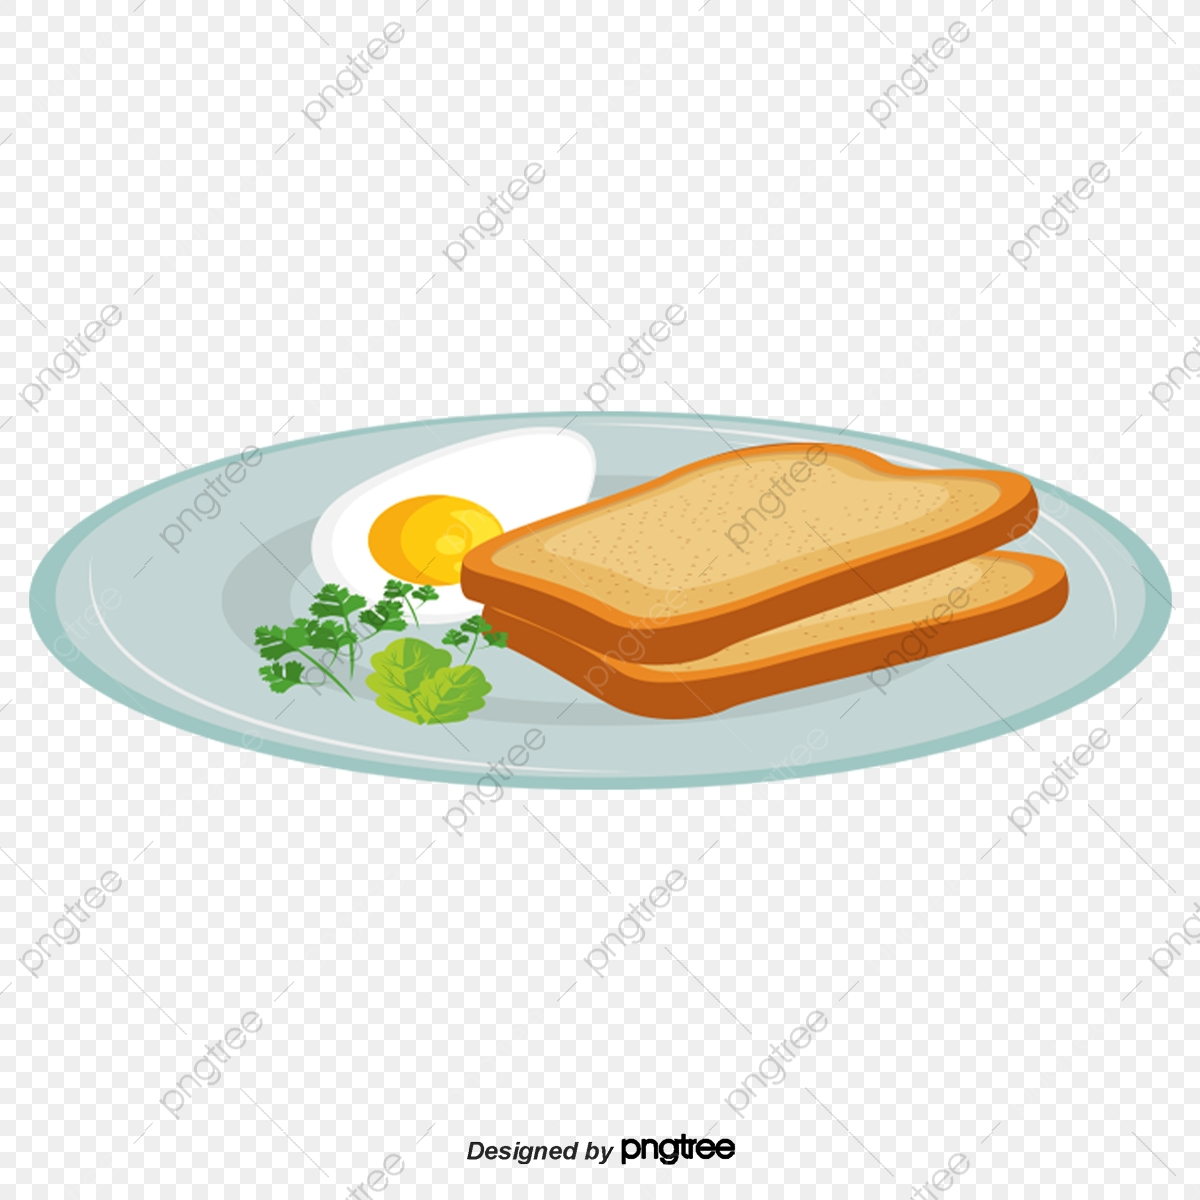 Breakfast Plate Png Images Vector And Psd Files Free Download On Pngtree